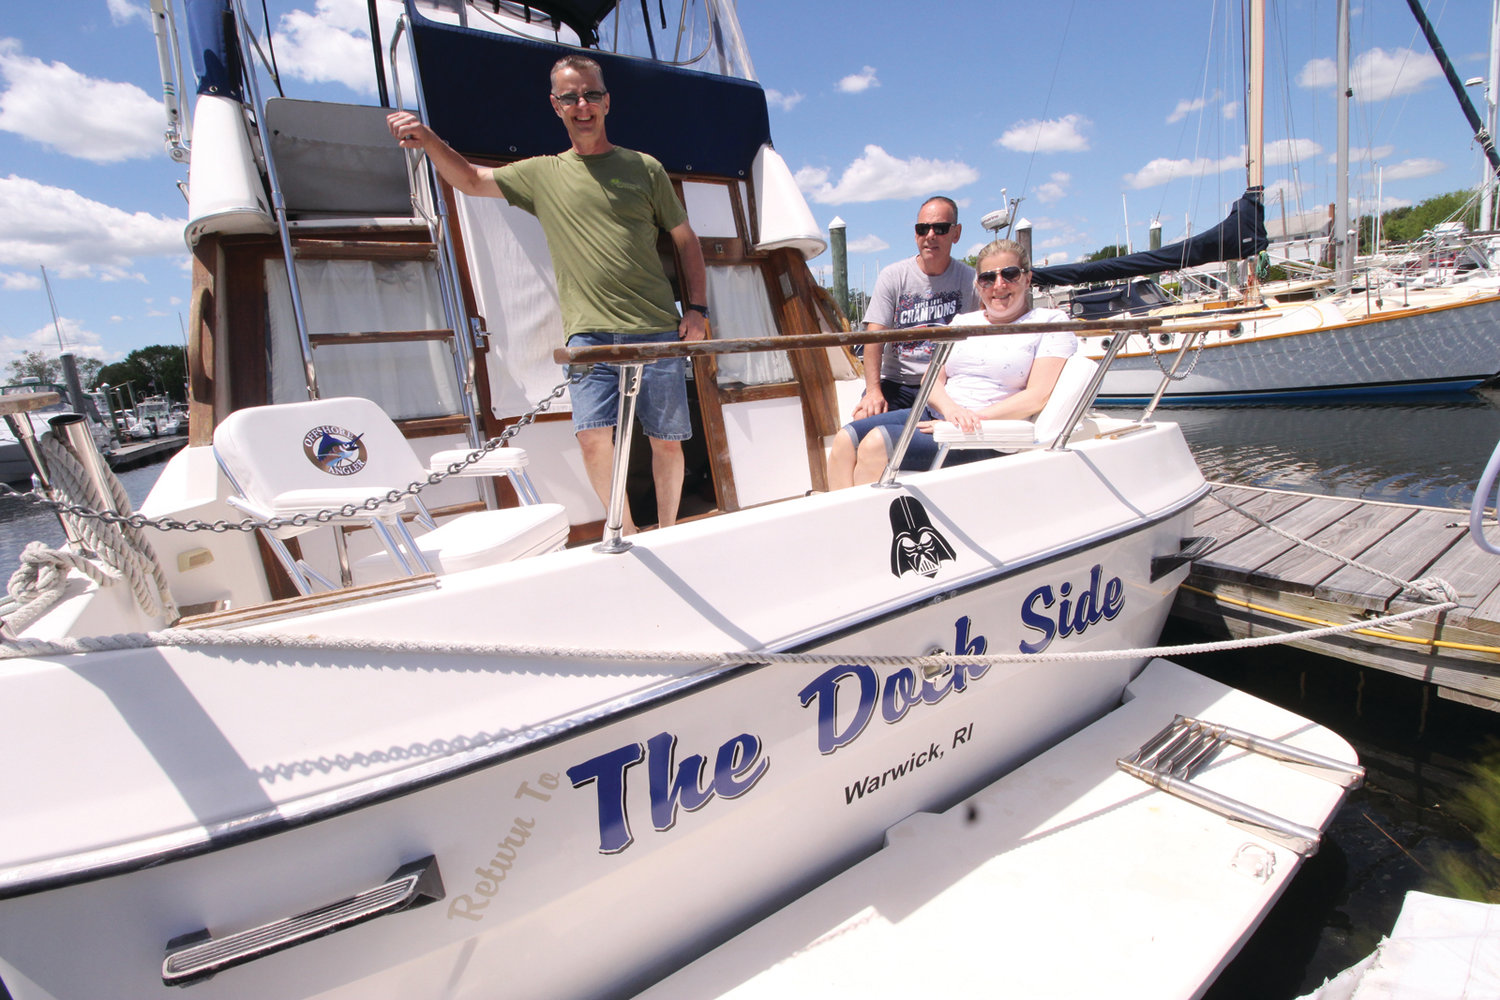 SET TO SAIL WITHOUT SAILS: Tim Palmer, who loves sailing and for years has owned a sailboat, now owns a powerboat. He was joined by his sister and brother in-law, Robin and Glen Rich, for a Memorial Day cruise on Greenwich Bay.